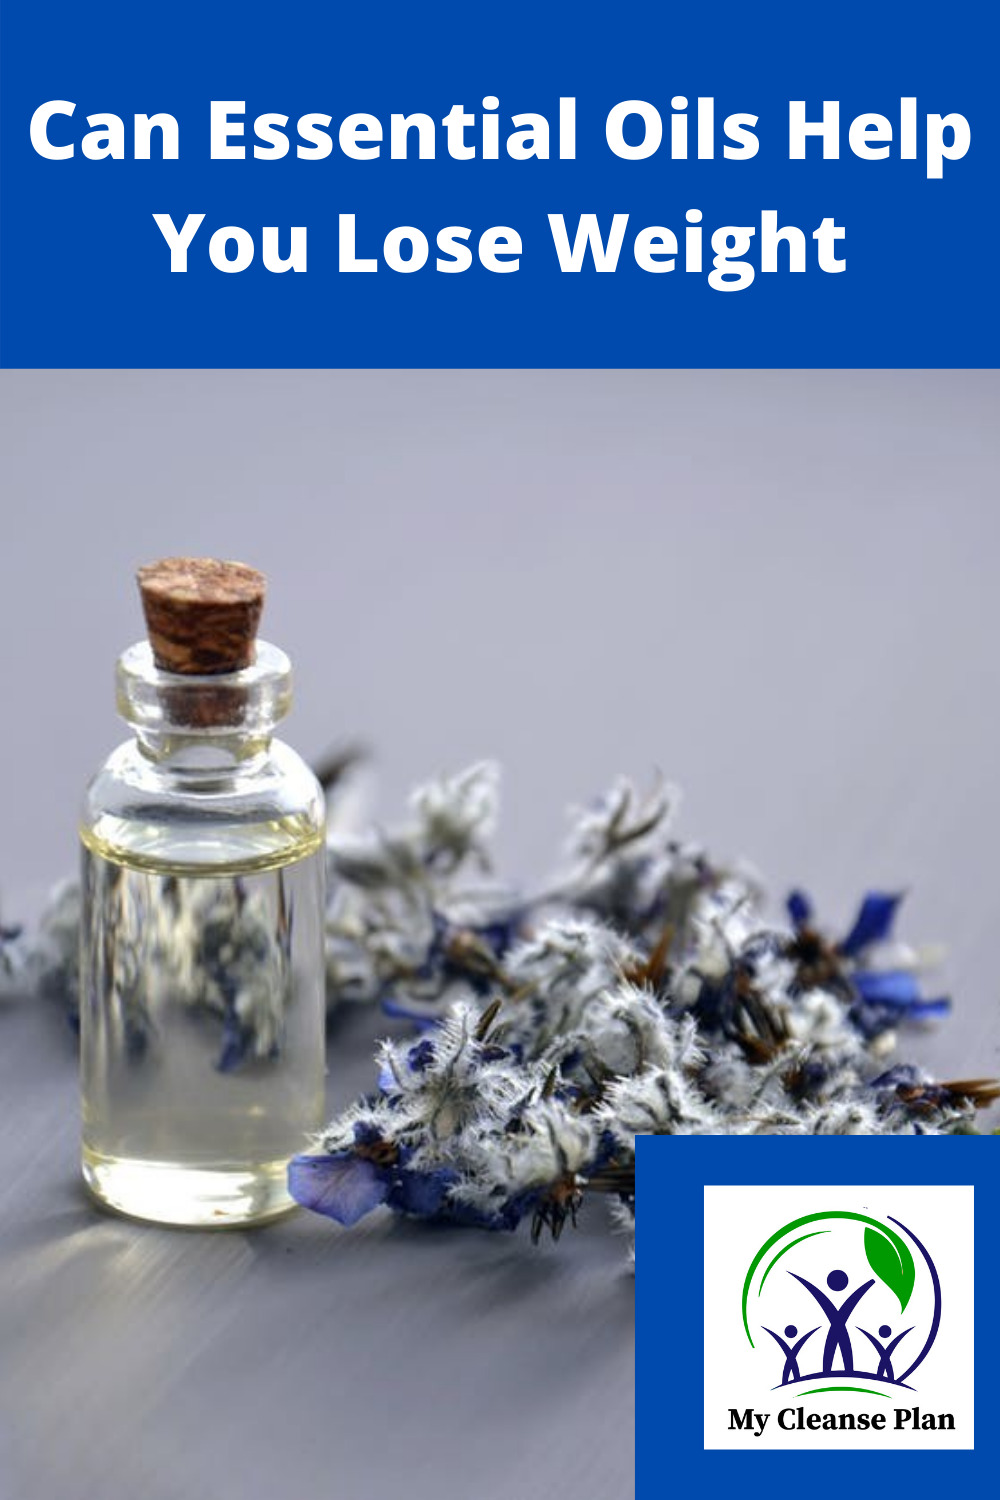 Can Essential Oils Help You Lose Weight